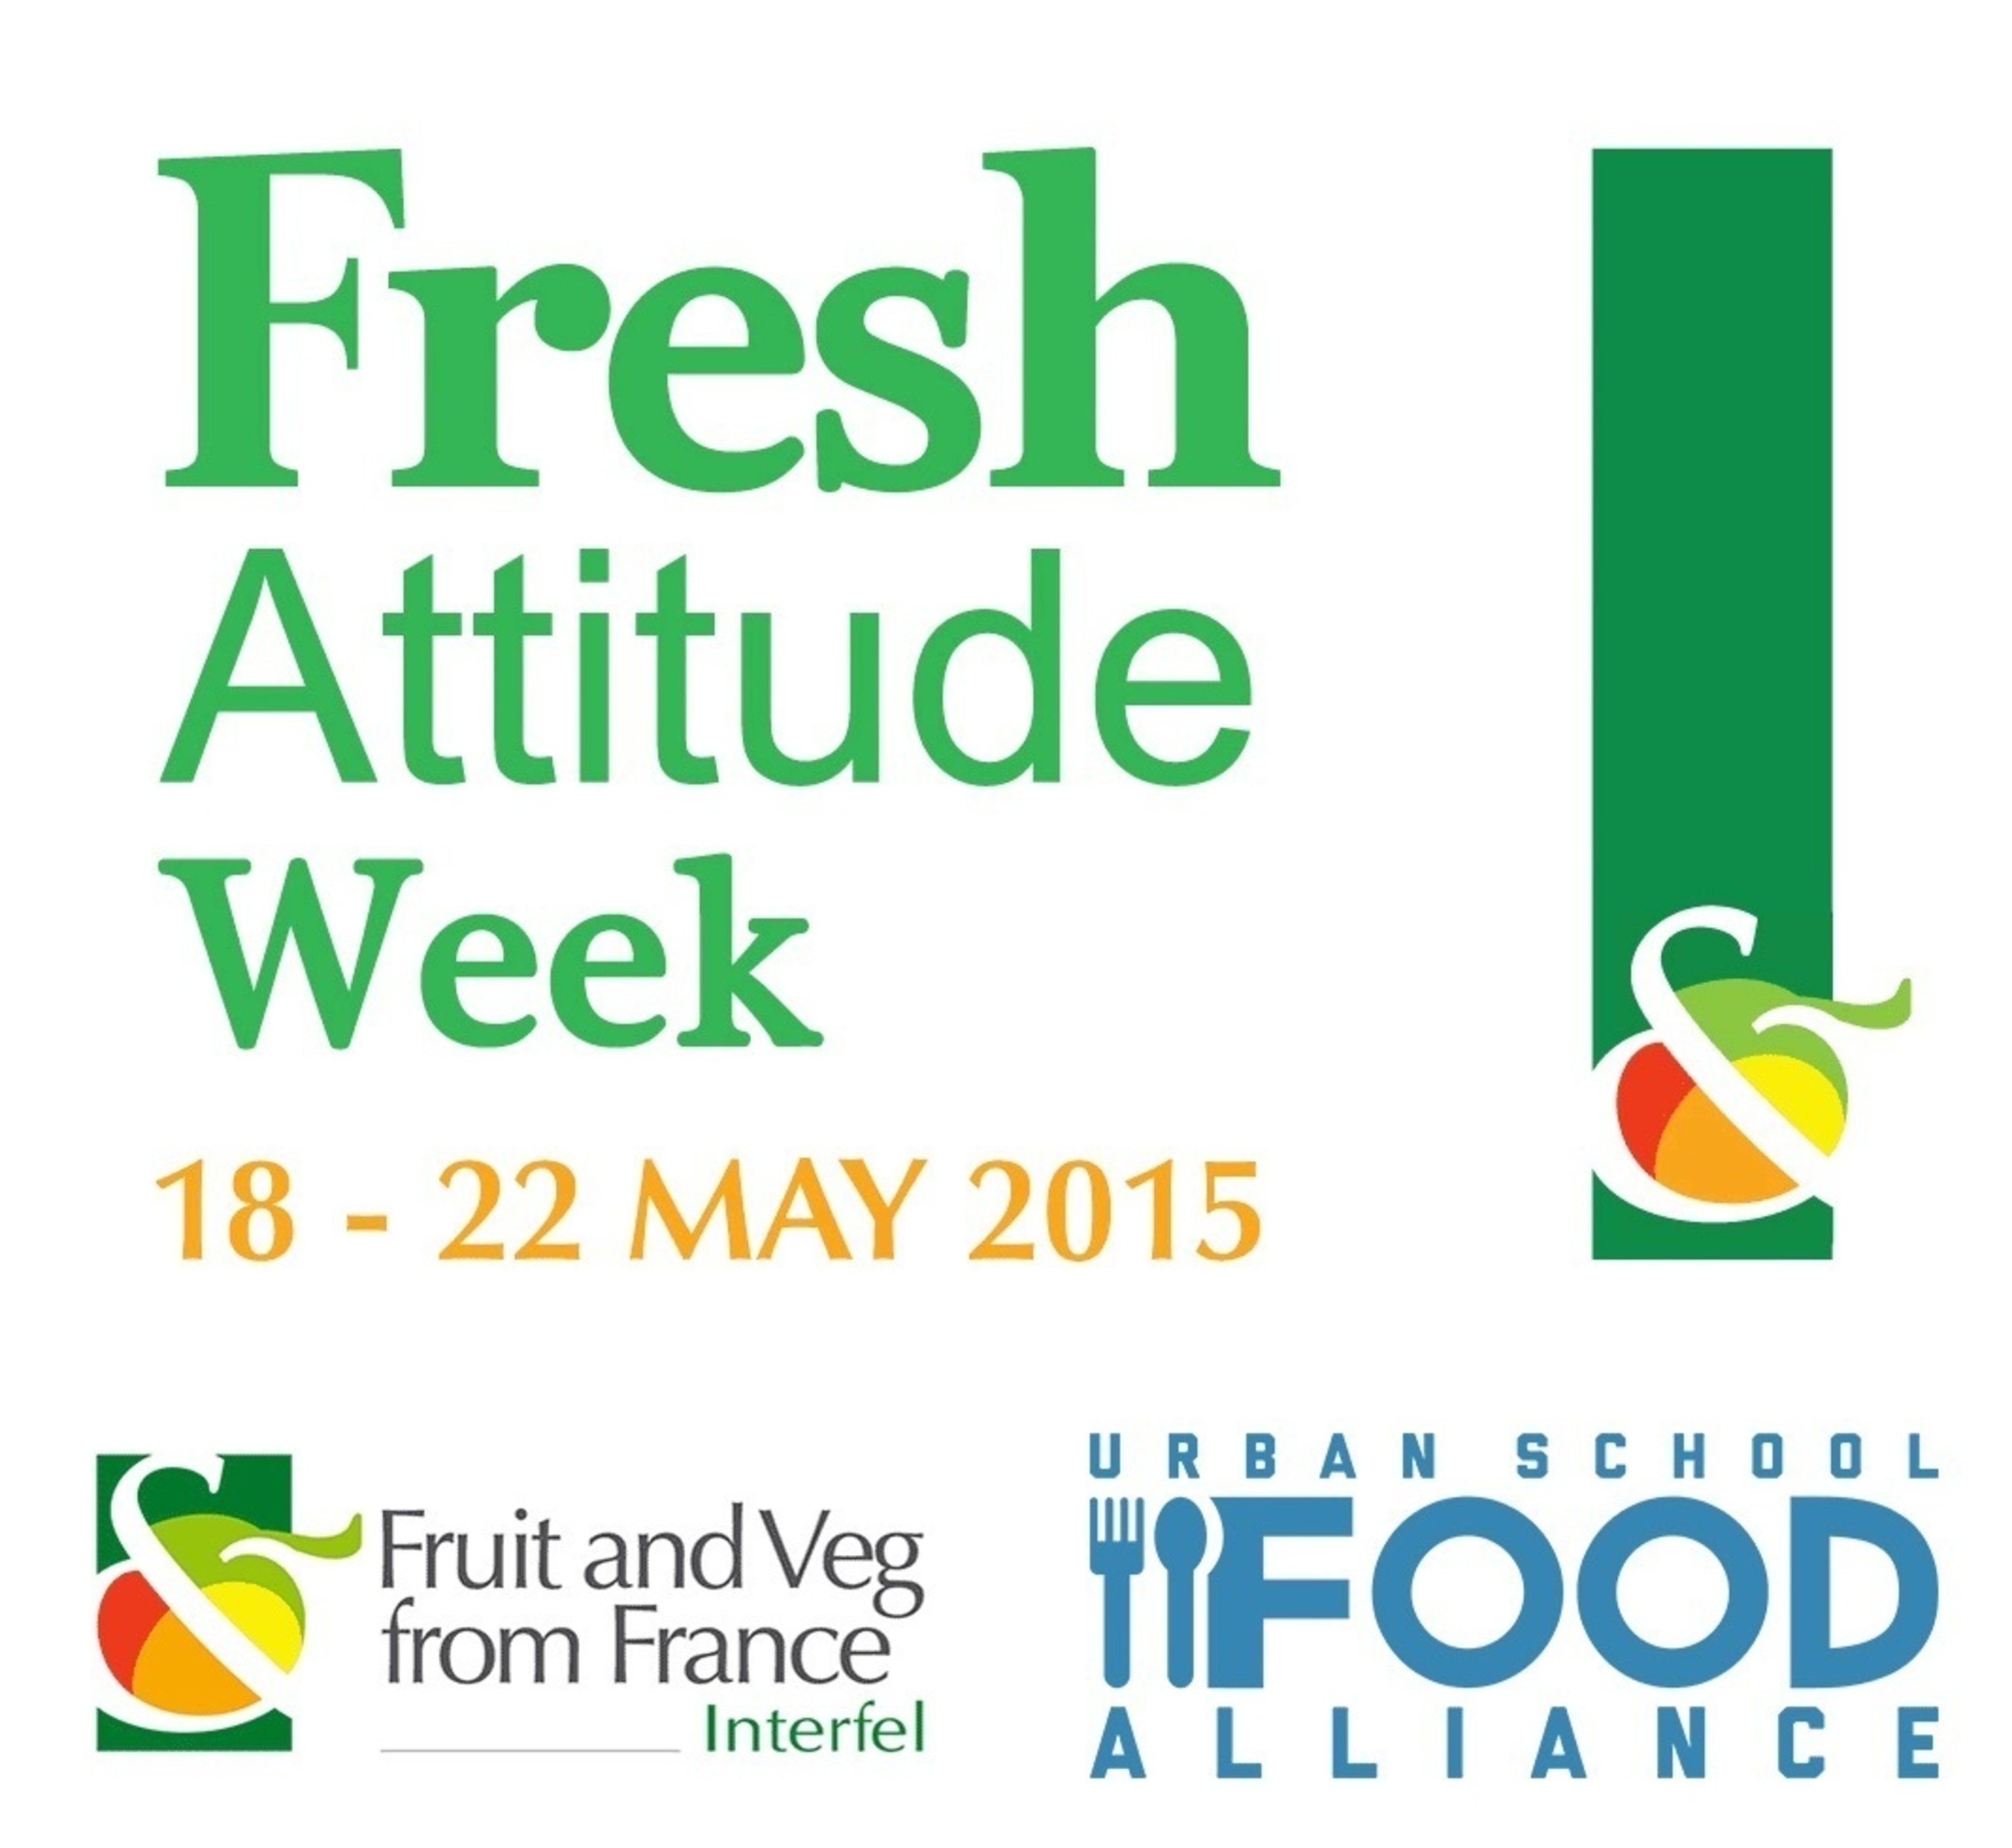 The Urban School Food Alliance celebrates Fresh Attitude Week in collaboration with the French Department of ...